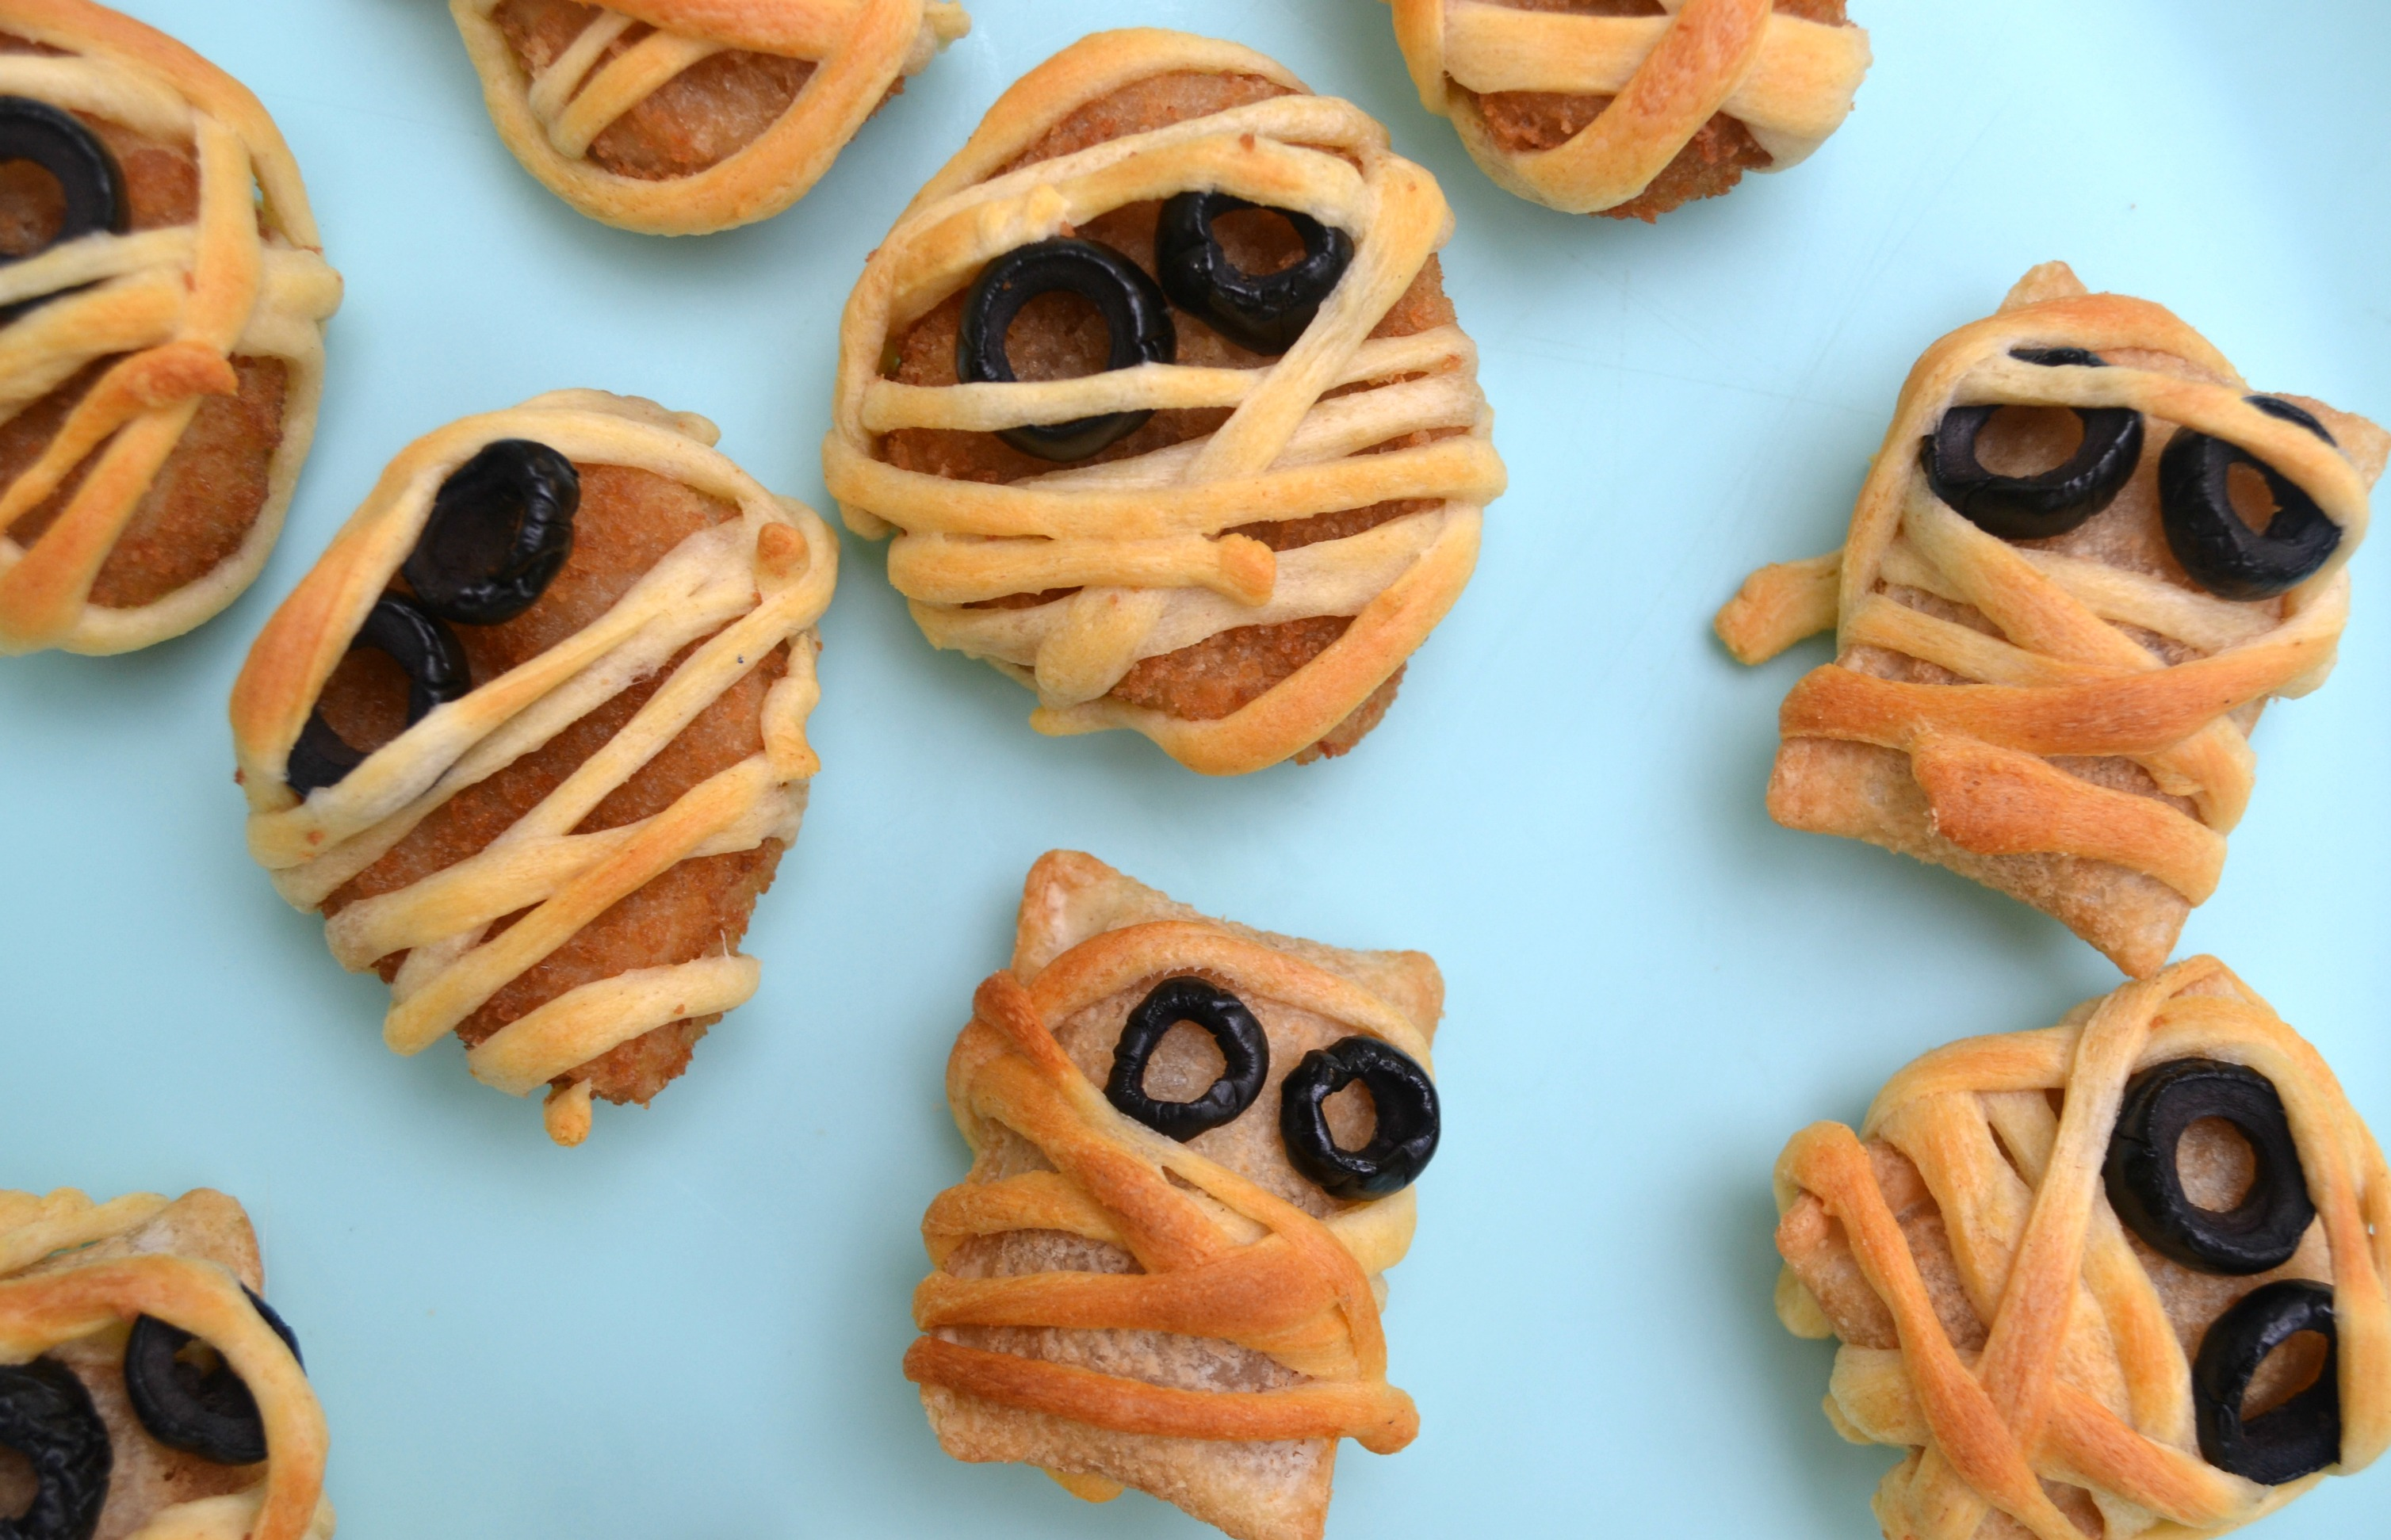 halloween mummy snacks on a blue background - chicken nuggets and pizza rolls rolled in thin strips of crescent roll with olive eyes.